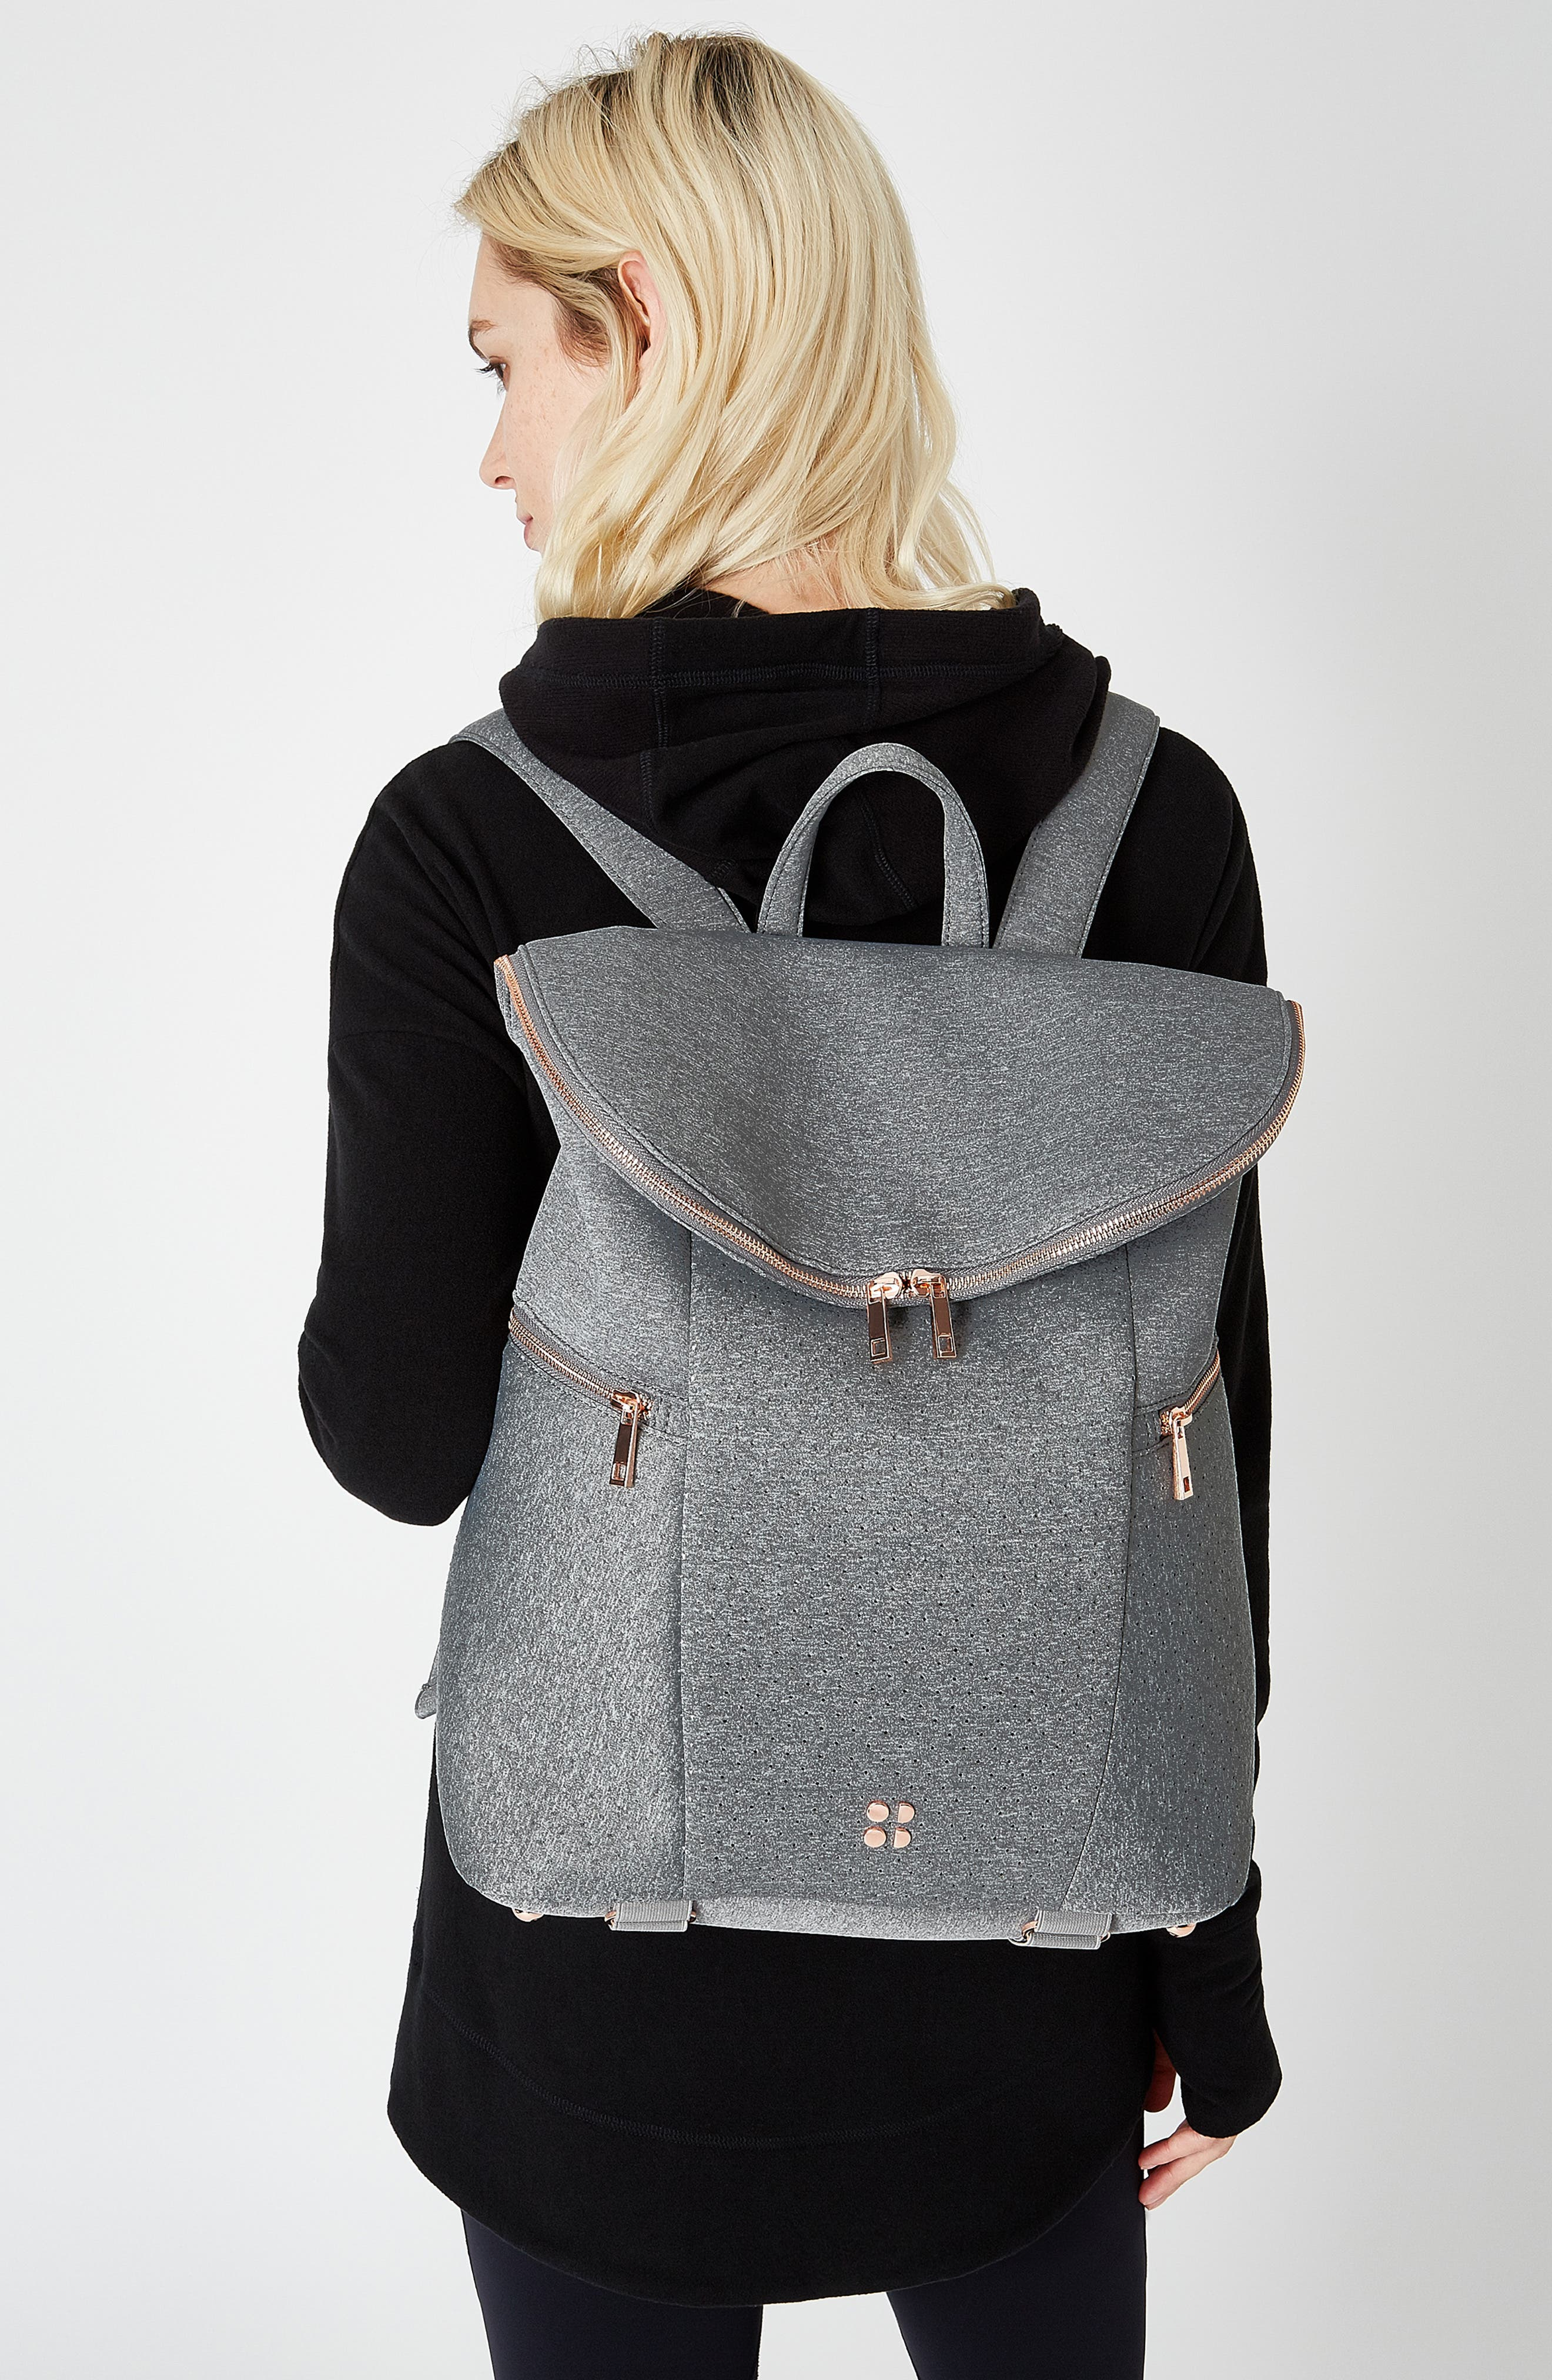 All Sport Backpack,                             Alternate thumbnail 2, color,                             CHARCOAL MARL